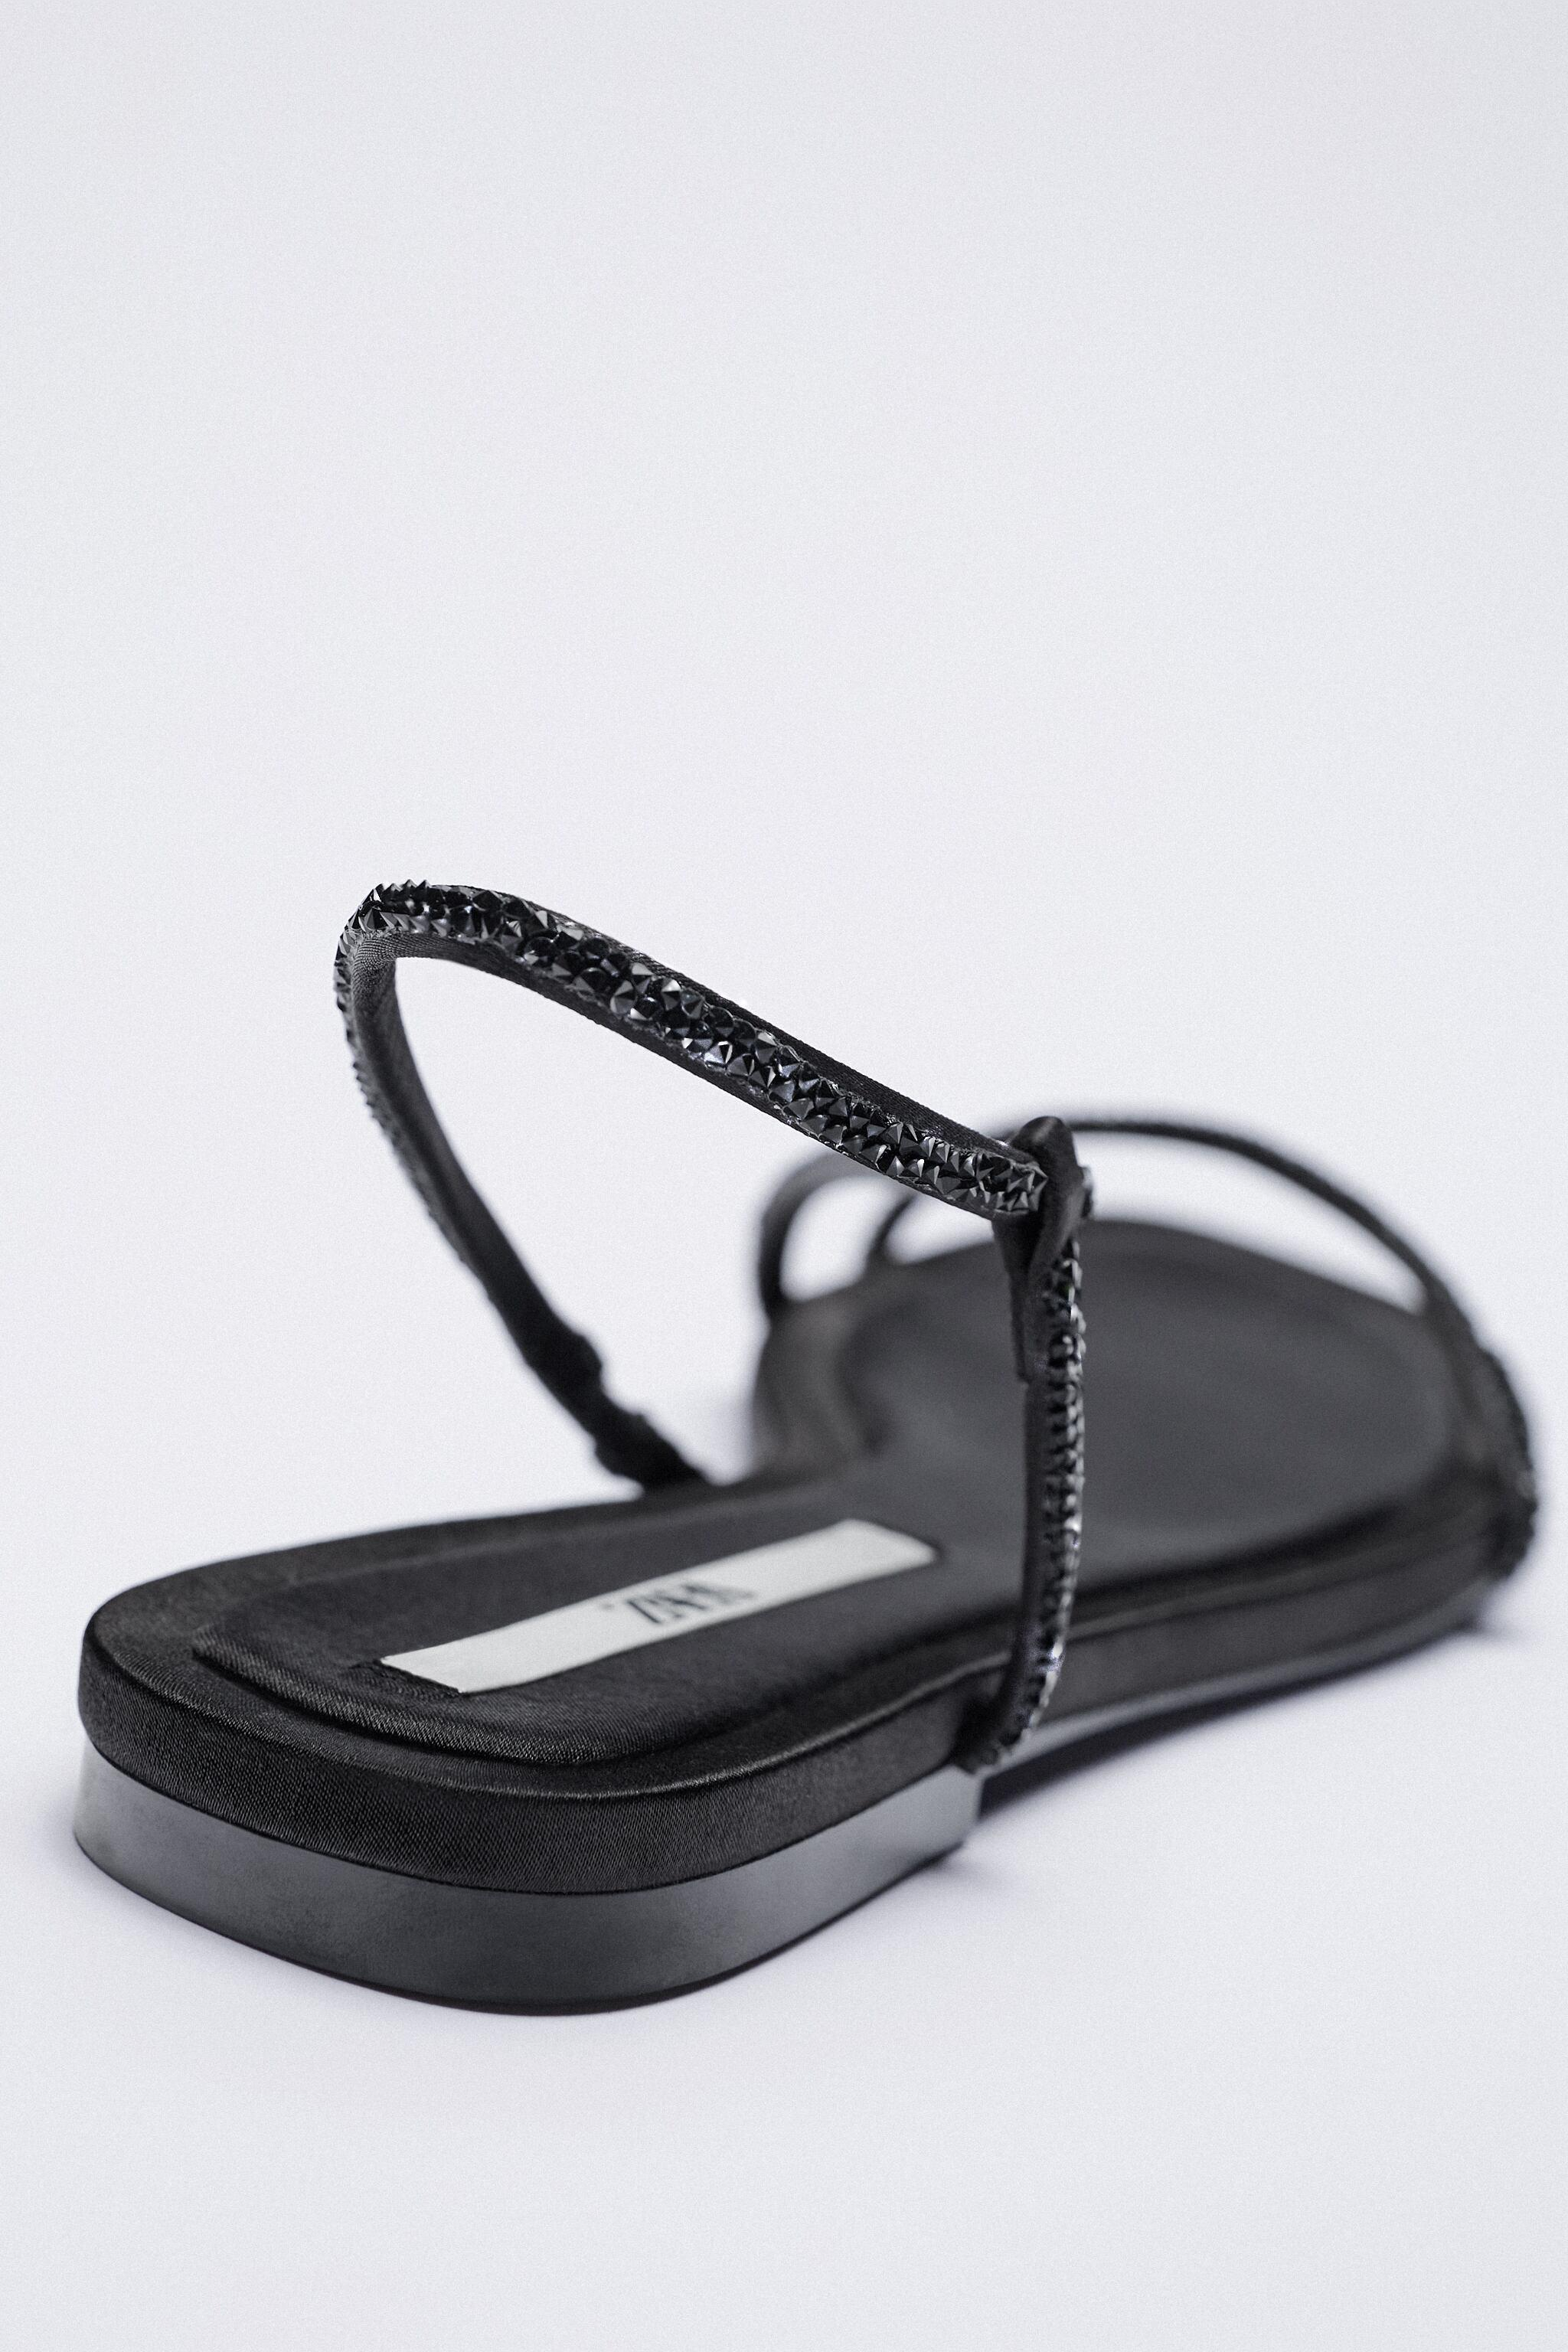 SPARKLY LOW HEELED SANDALS 4